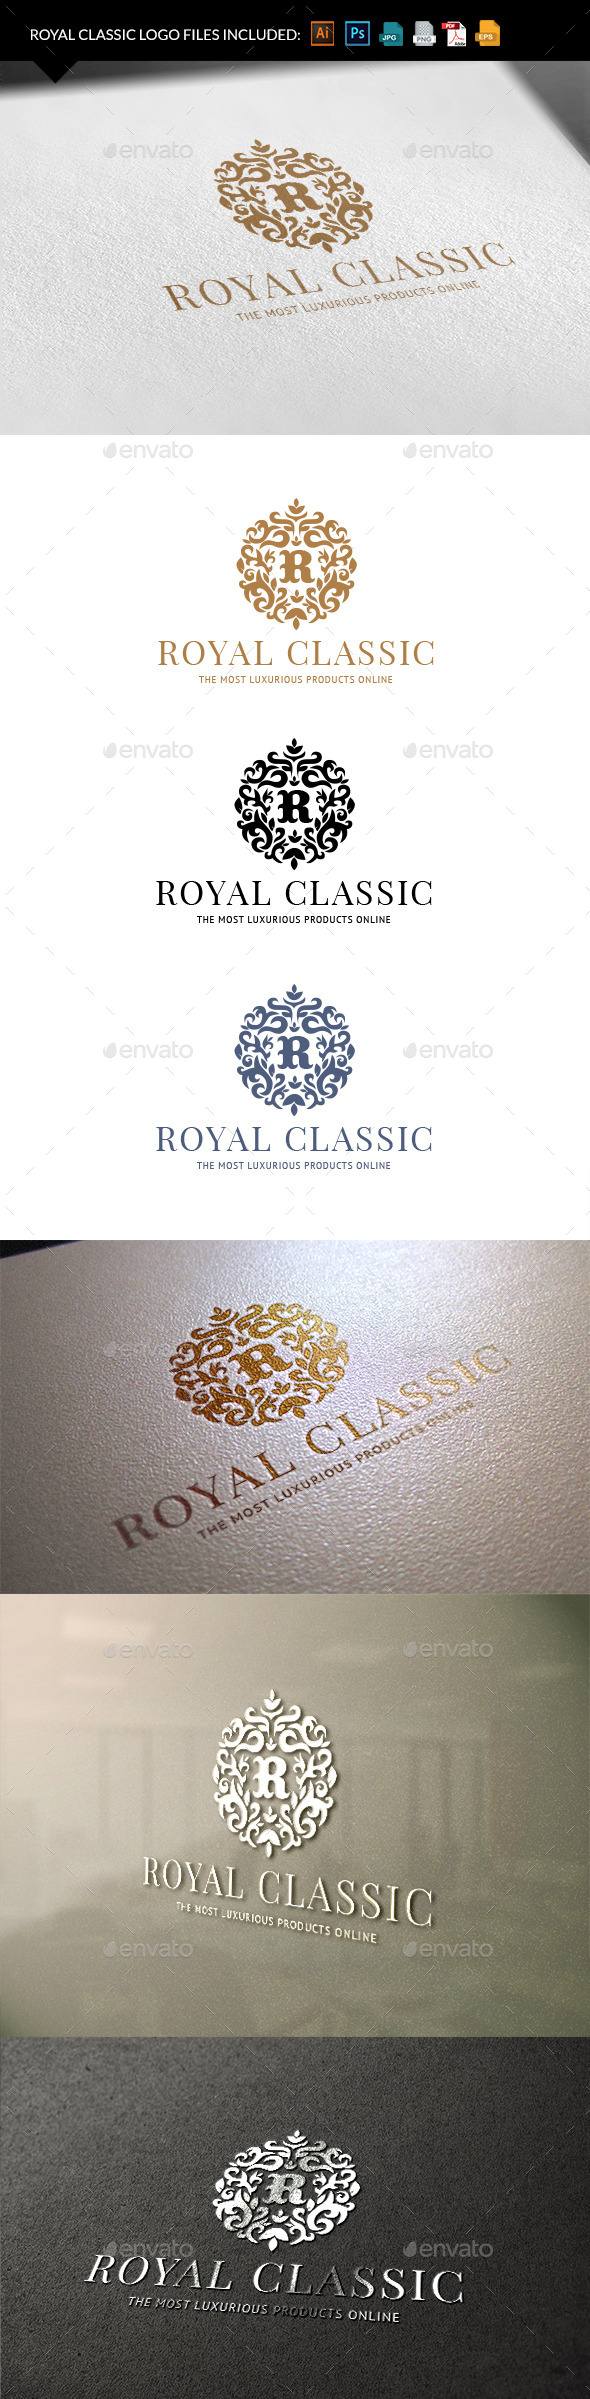 Royal Classic - Crests Logo Templates